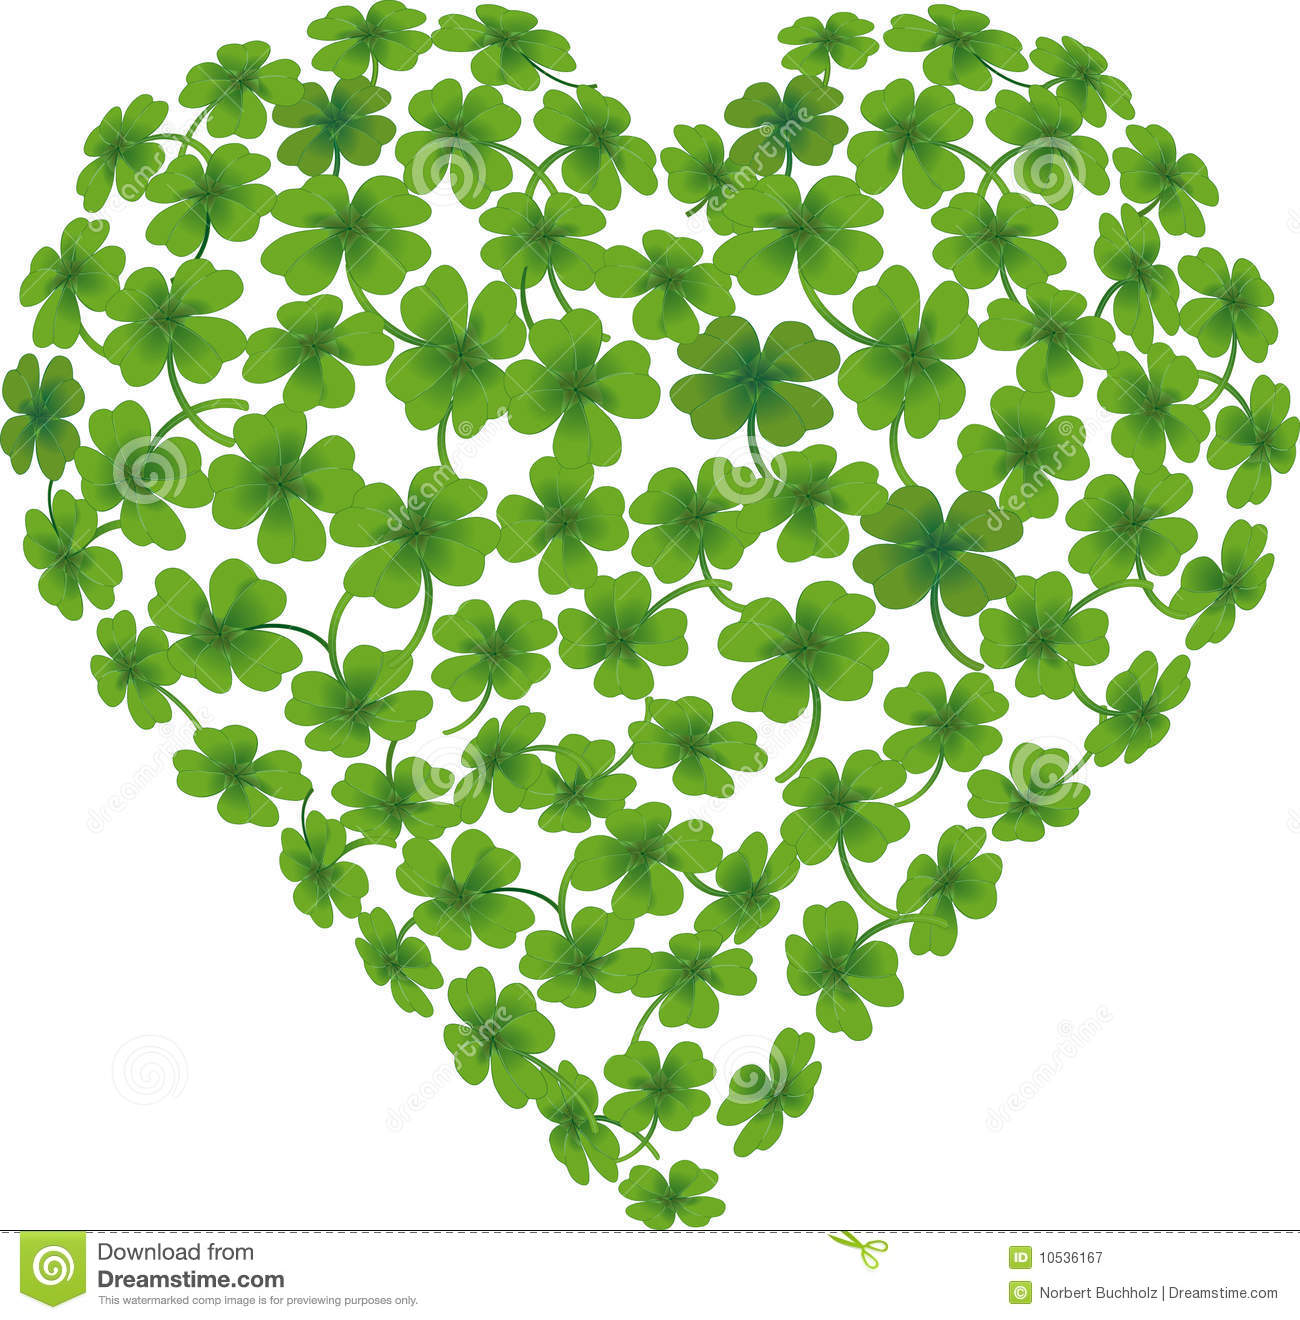 Heart Shamrock Royalty Free Stock Photography - Image: 10536167